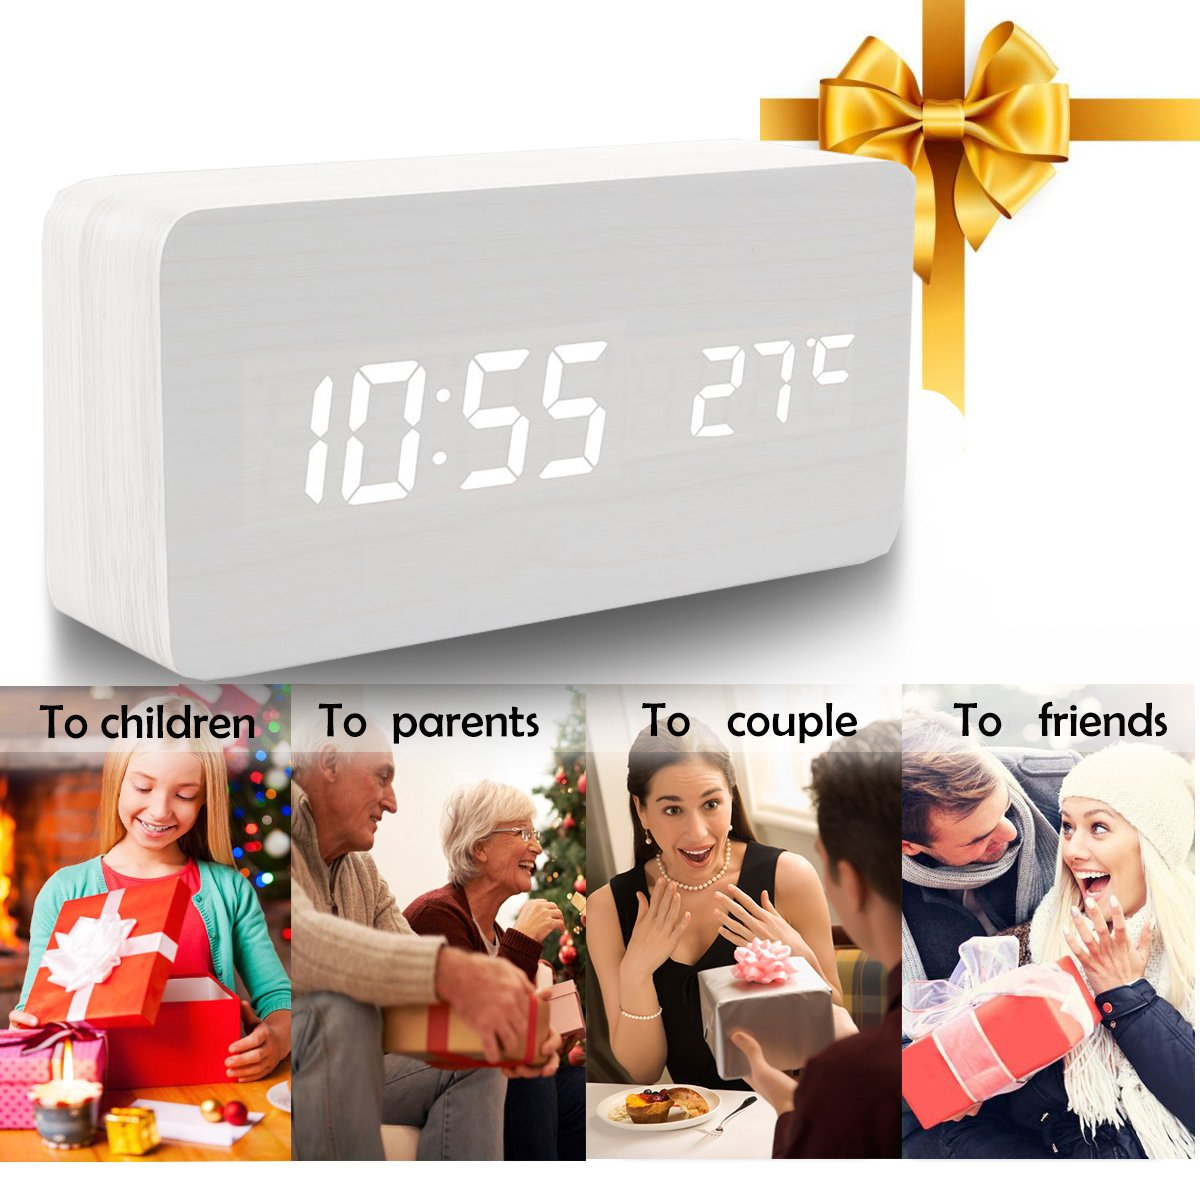 Girlsight White Wood Alarm Clock,Digital Alarm Clock, Wooden Wake Up Bedside Travel Alarm Clock with Time Temperature Humidity Sound Control Led Alarm Clock for Home Bedroom Office-triangle